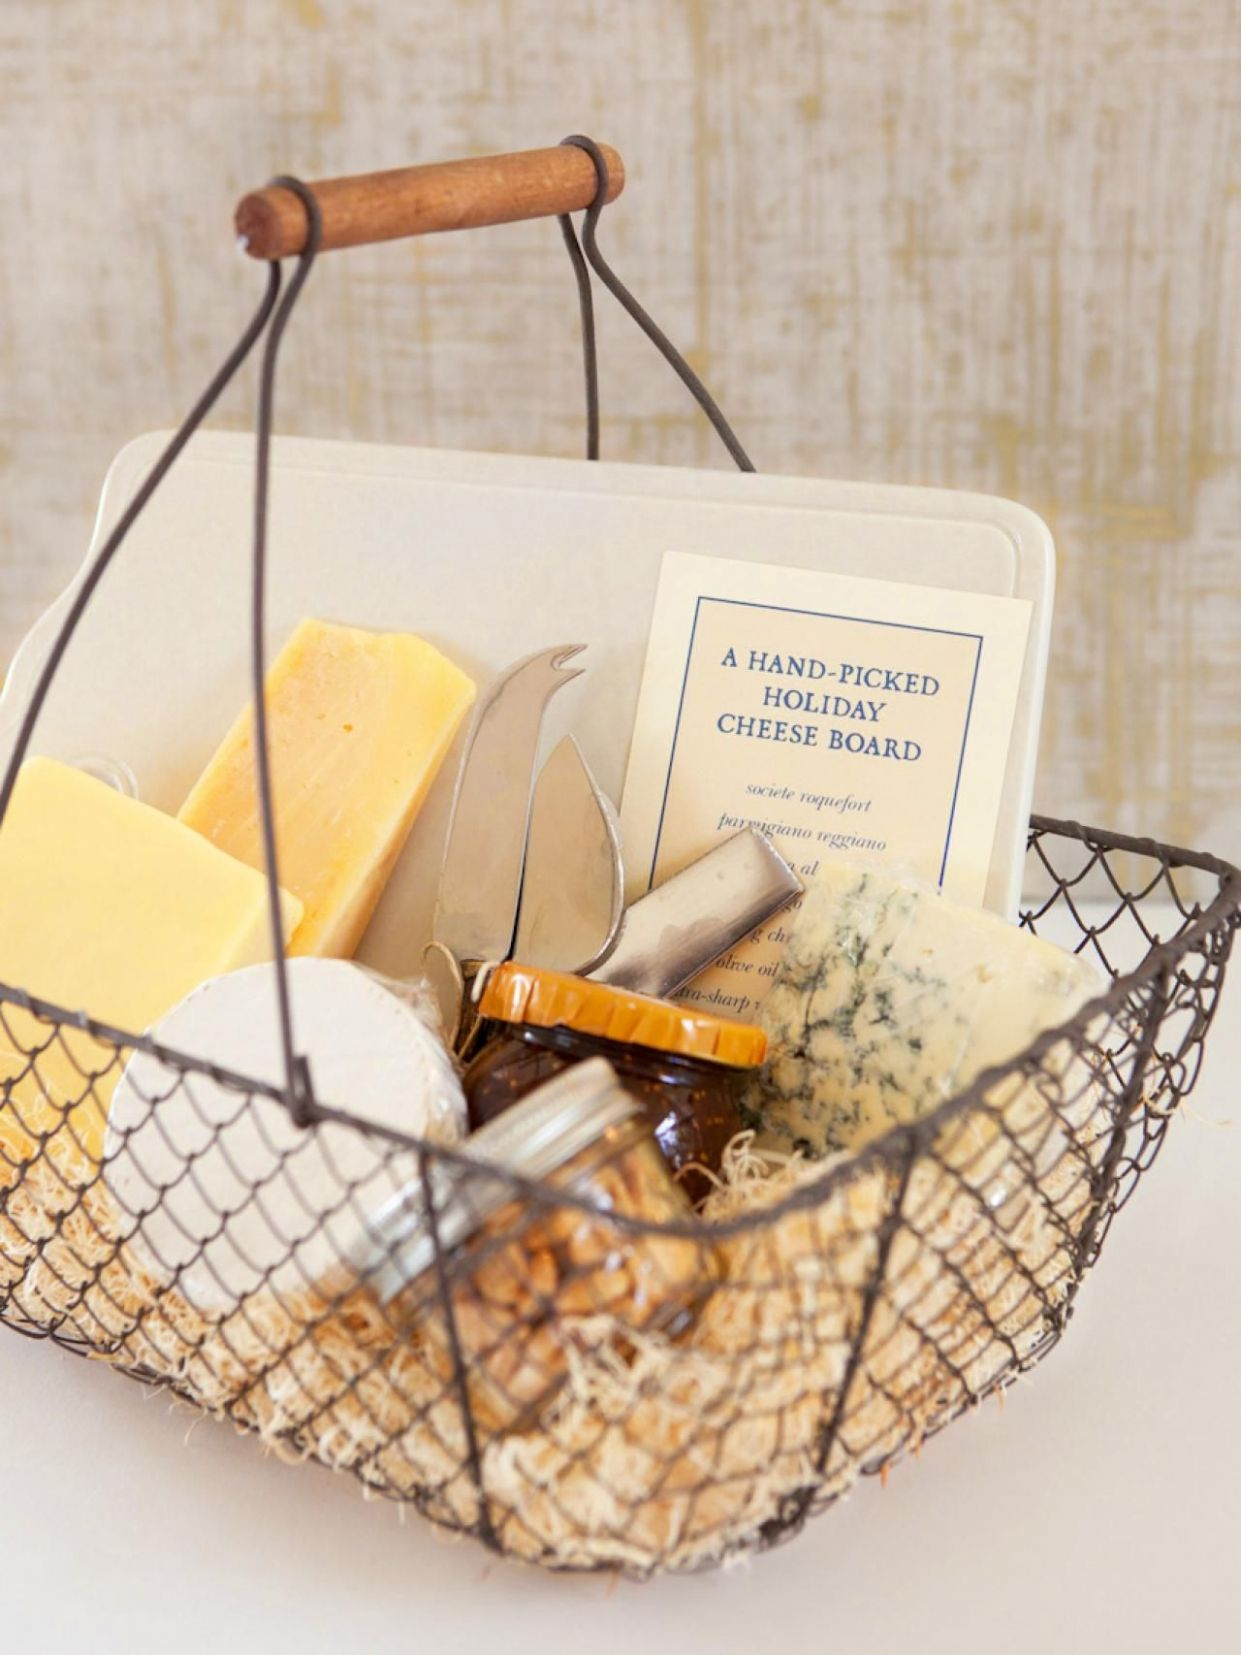 Gourmet Gift Ideas and DIY Food Baskets | DIY Home Decor and ..